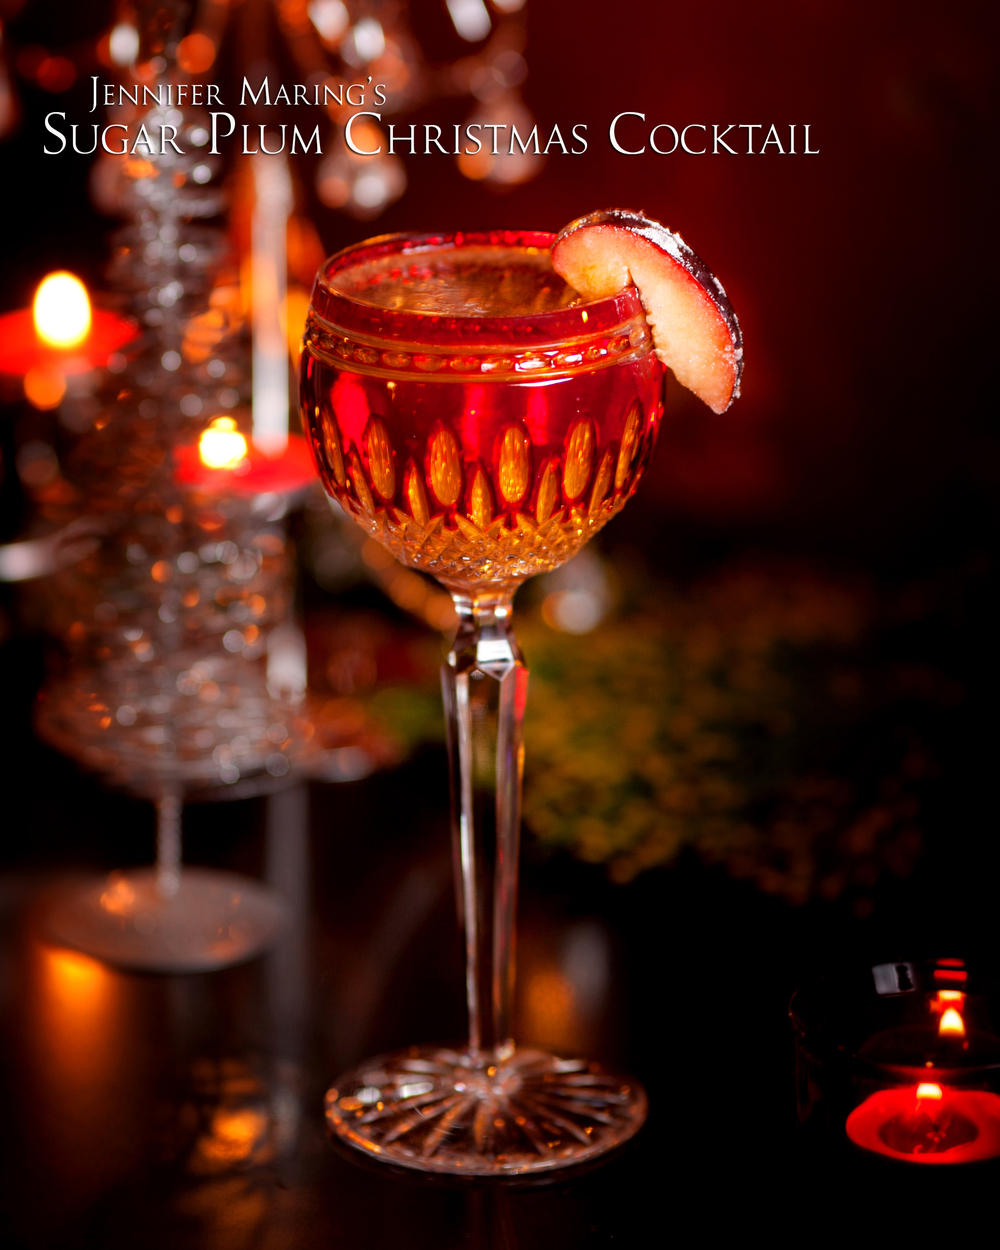 Sugar Plum Christmas Cocktail Recipe